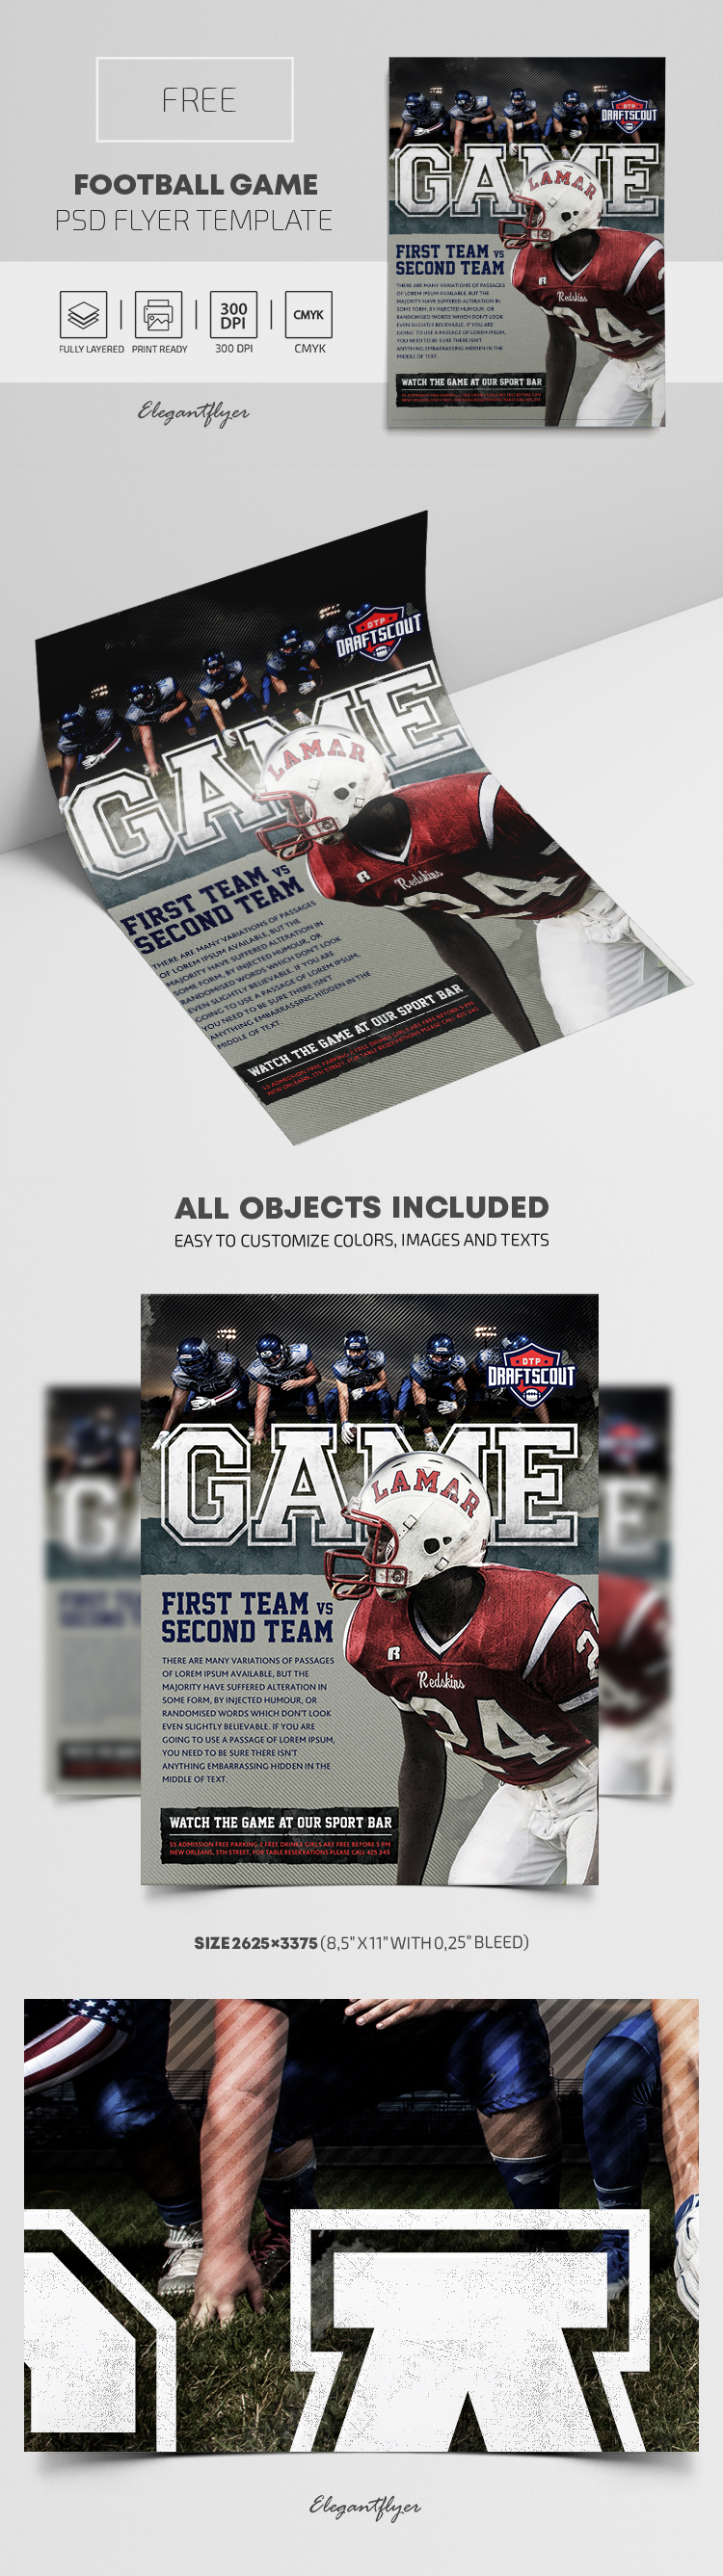 Football Game – Free PSD Flyer Template